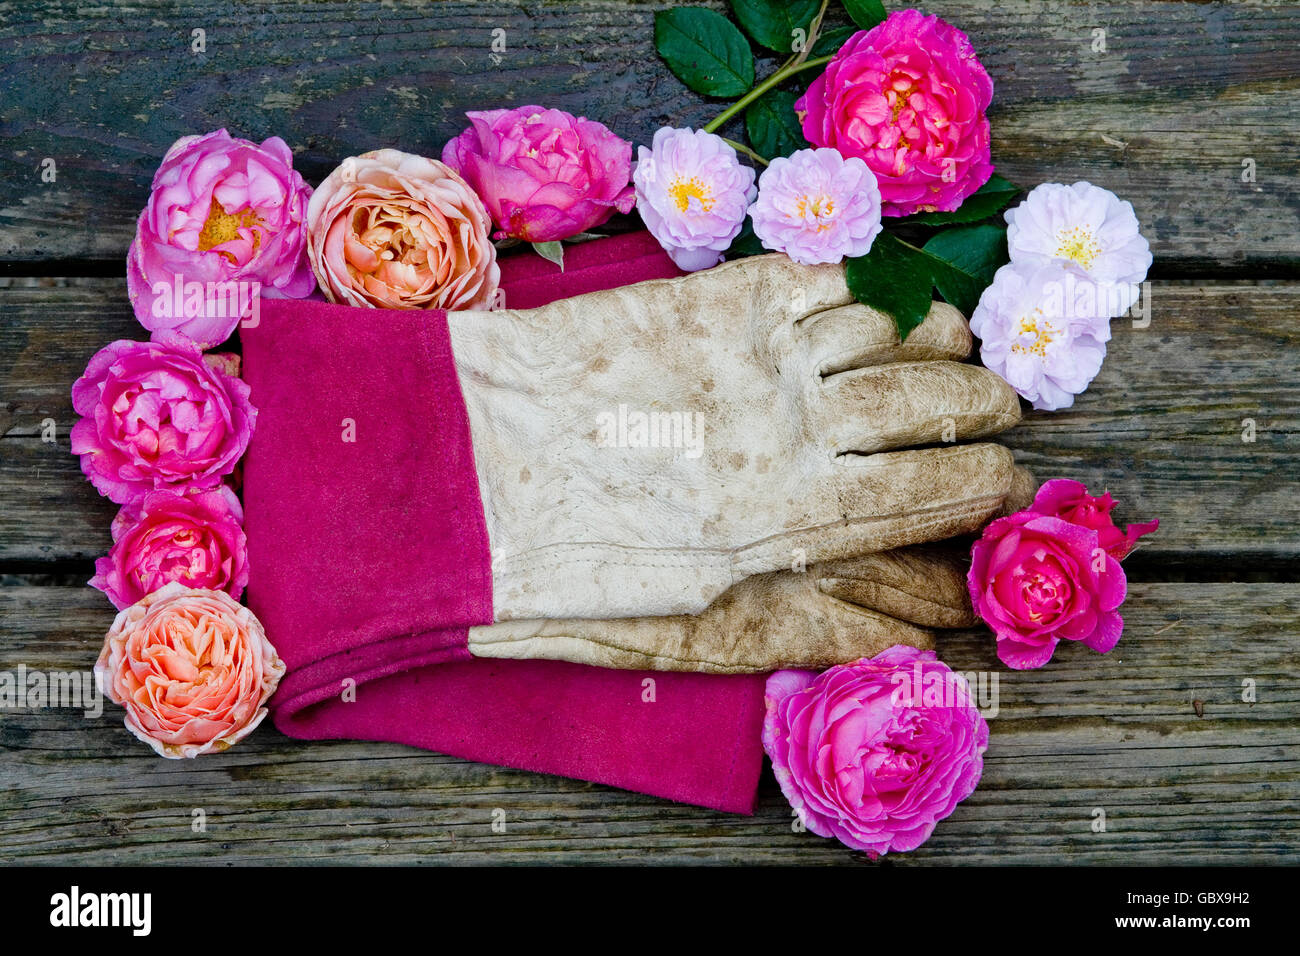 gardening gloves surrounded by roses - Stock Image